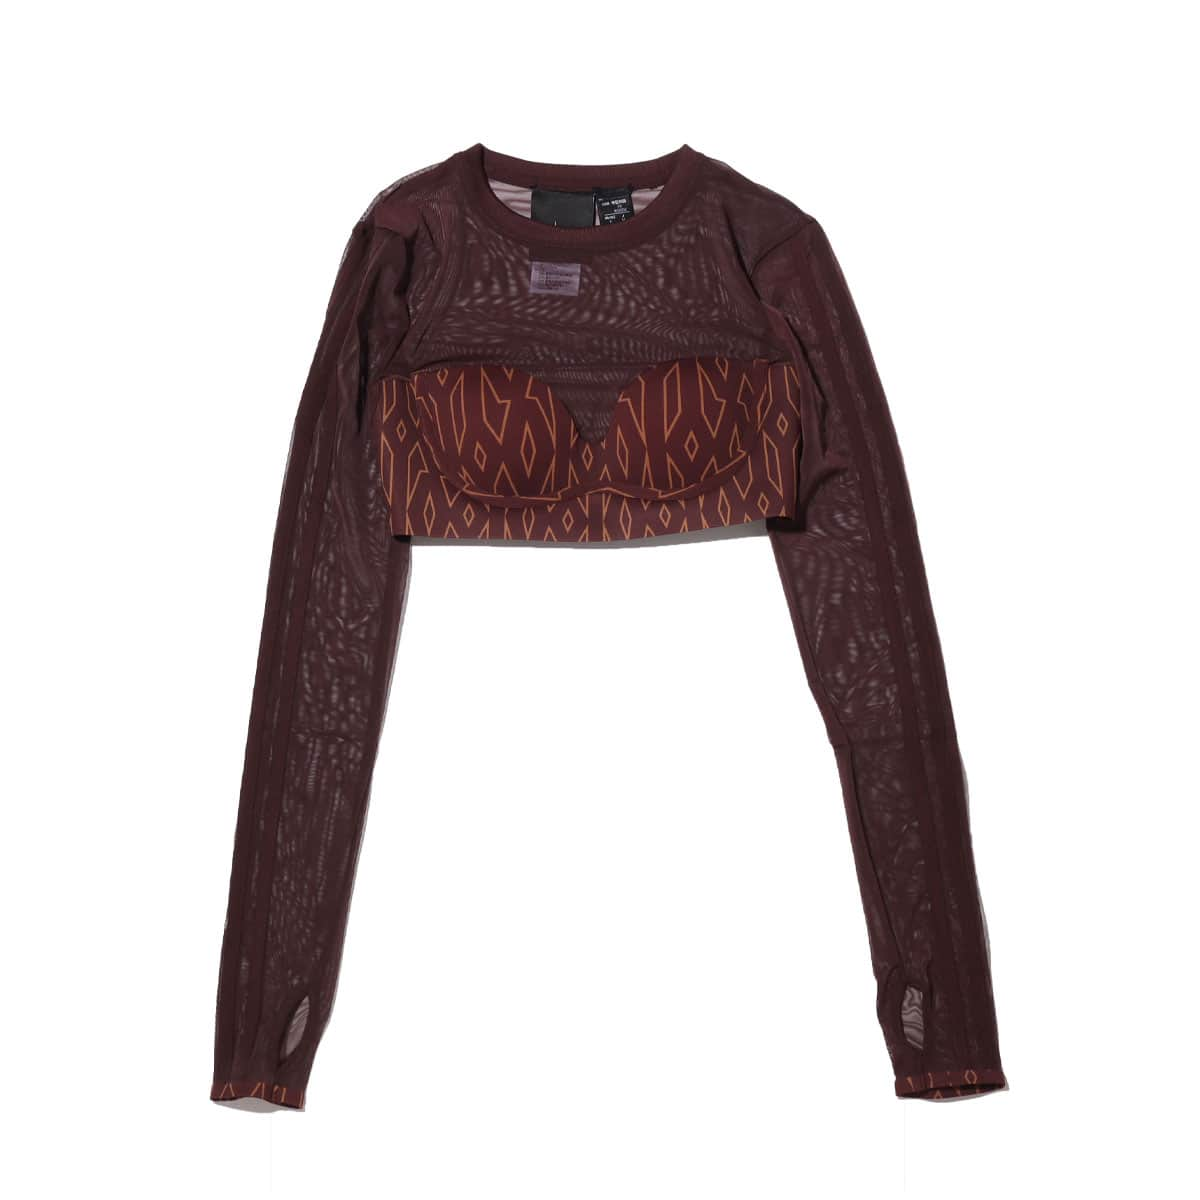 adidas IVP MNGM CROP NIGHT RED/WILD BROWN 21SS-S_photo_large